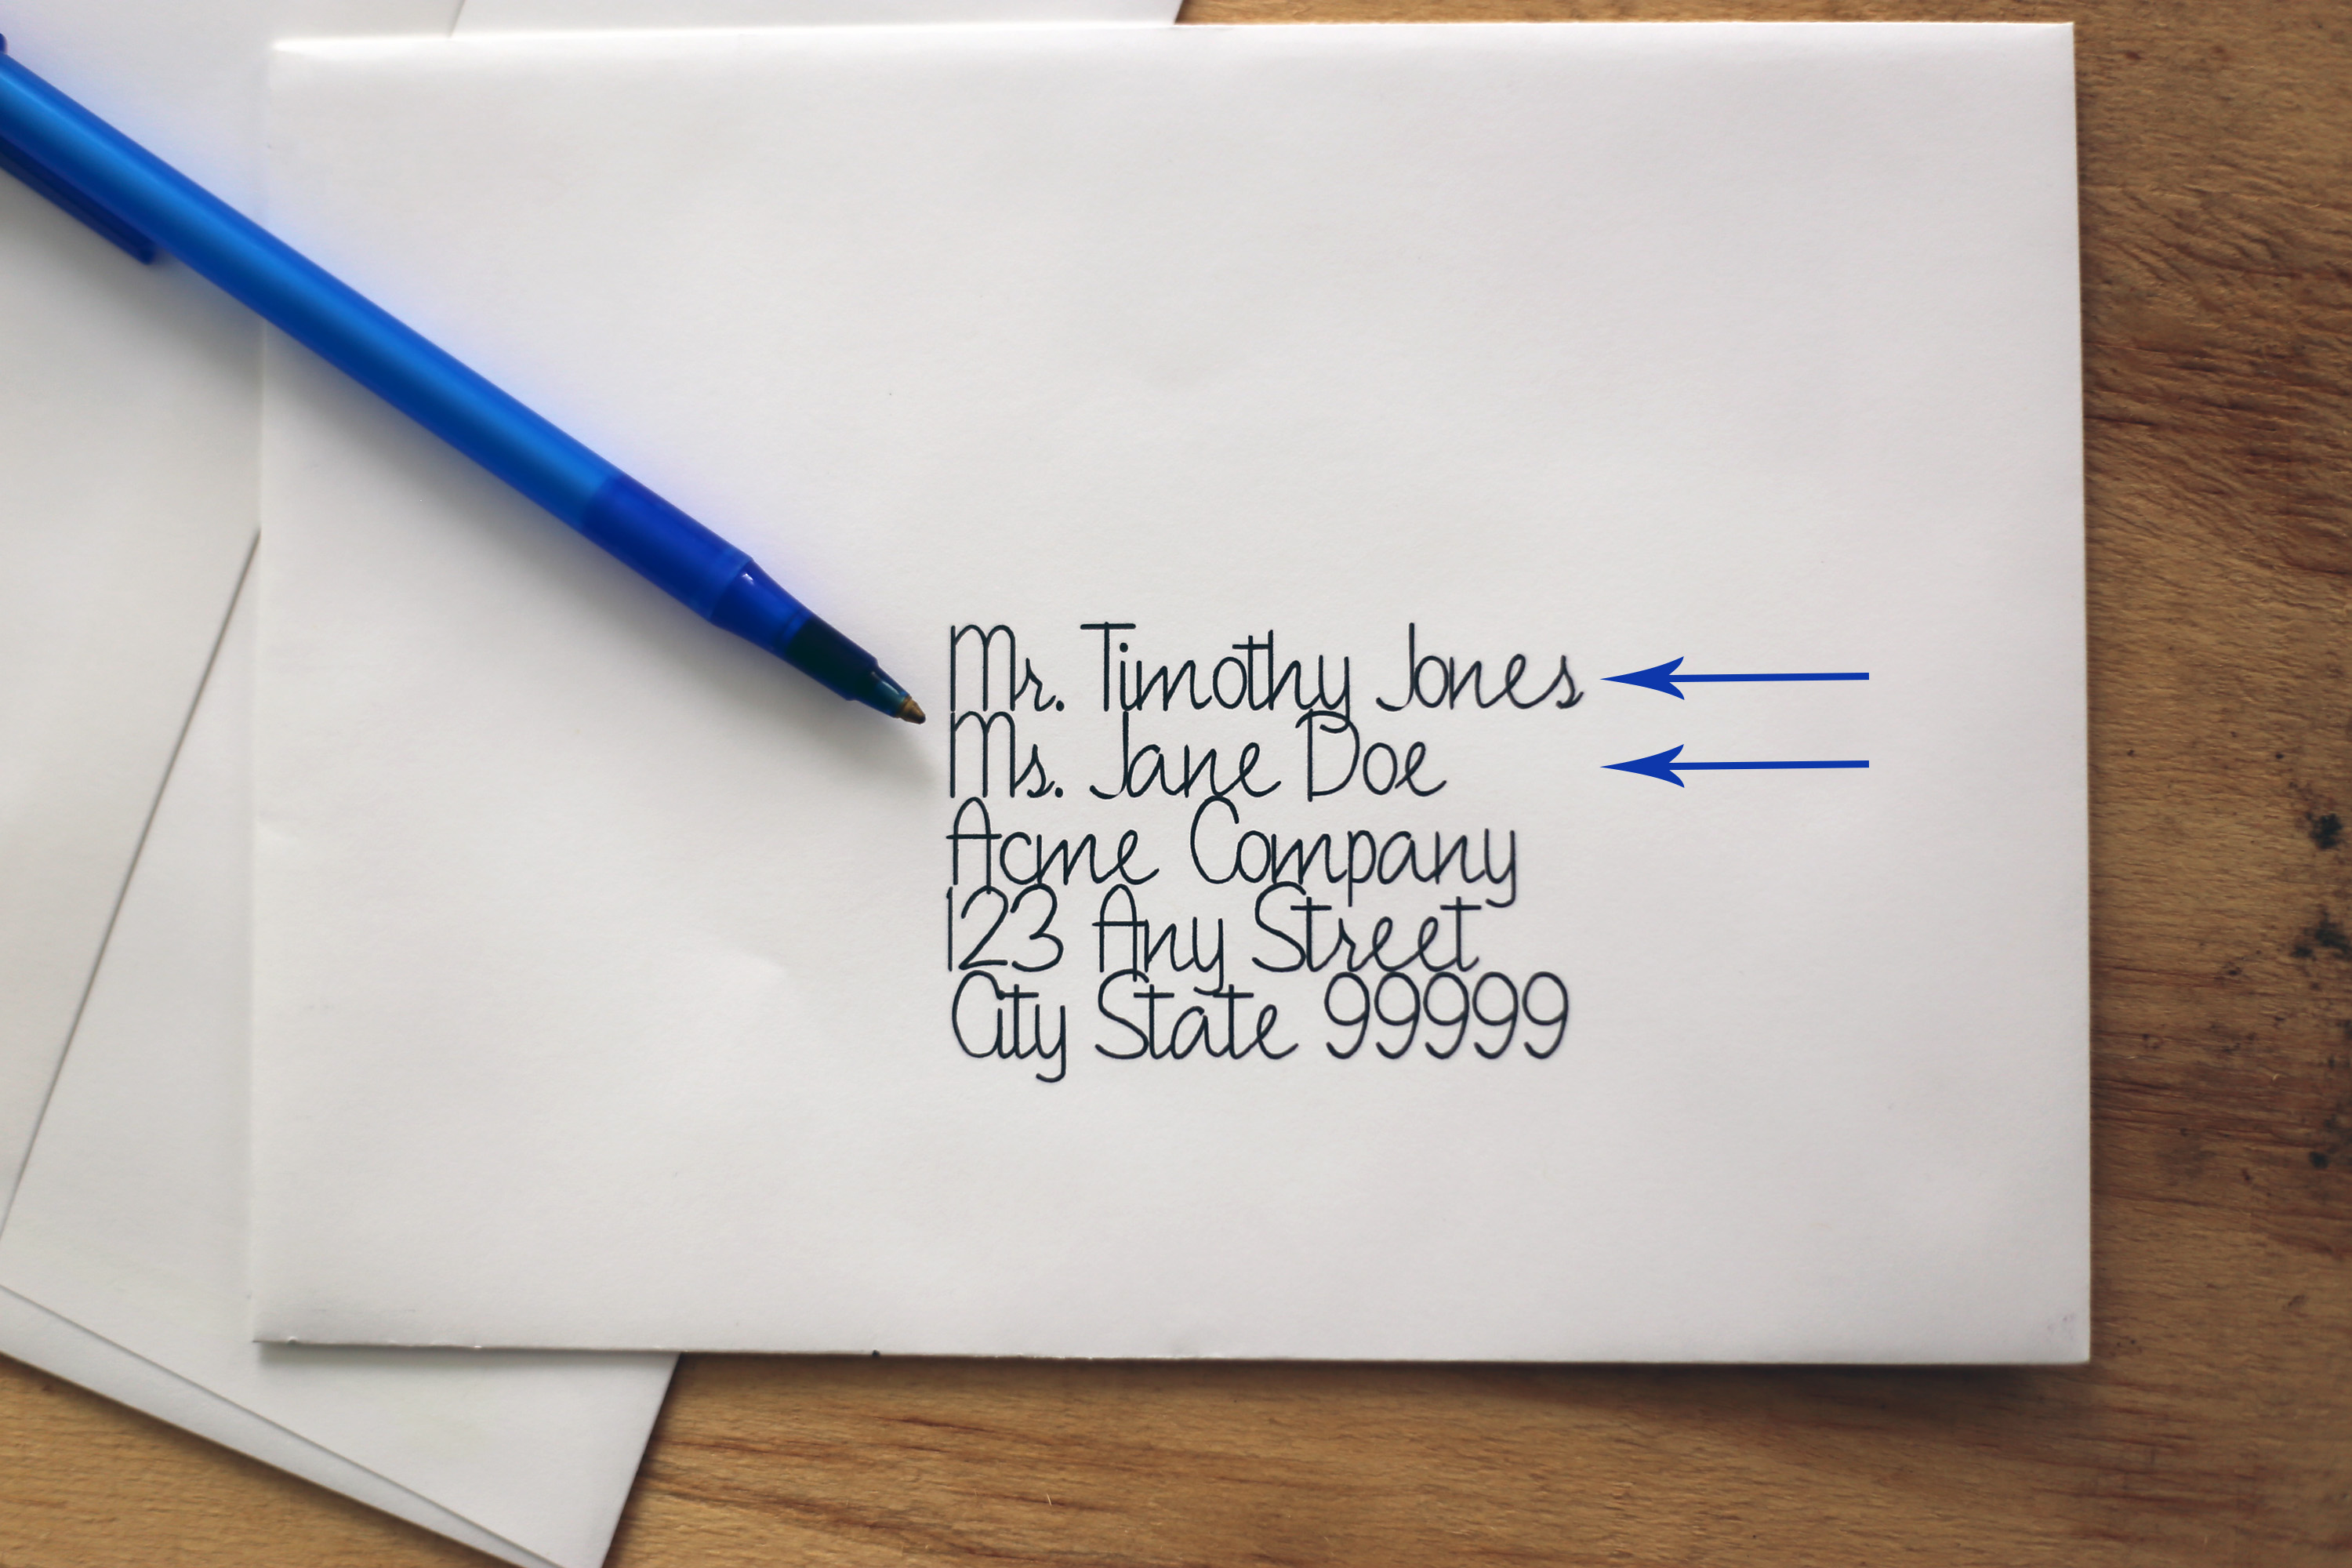 Proper Mailing Address Etiquette | Our Everyday Life